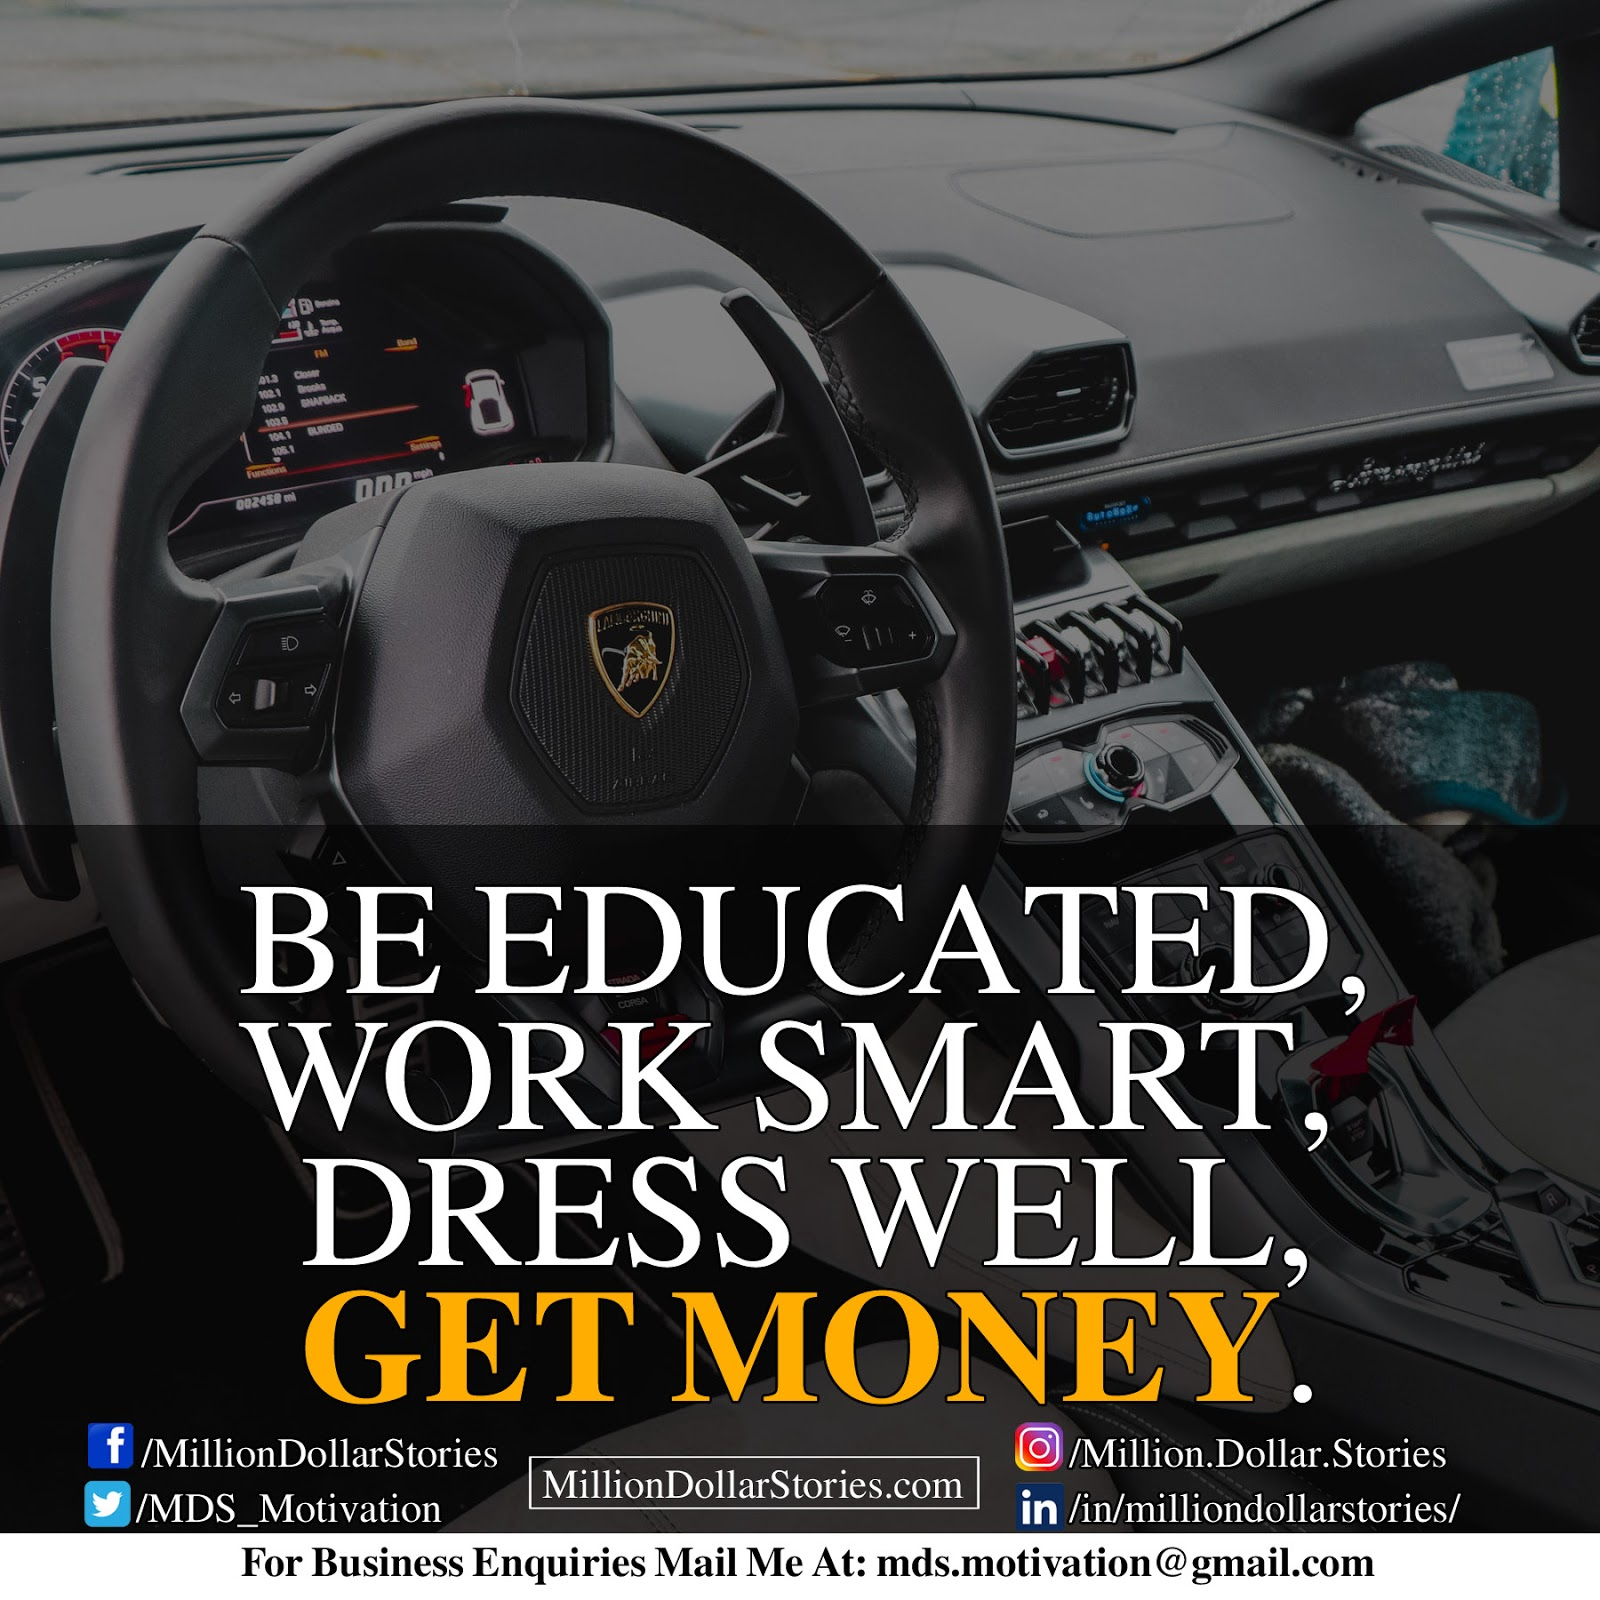 BE EDUCATED, WORK SMART, DRESS WELL, GET MONEY.